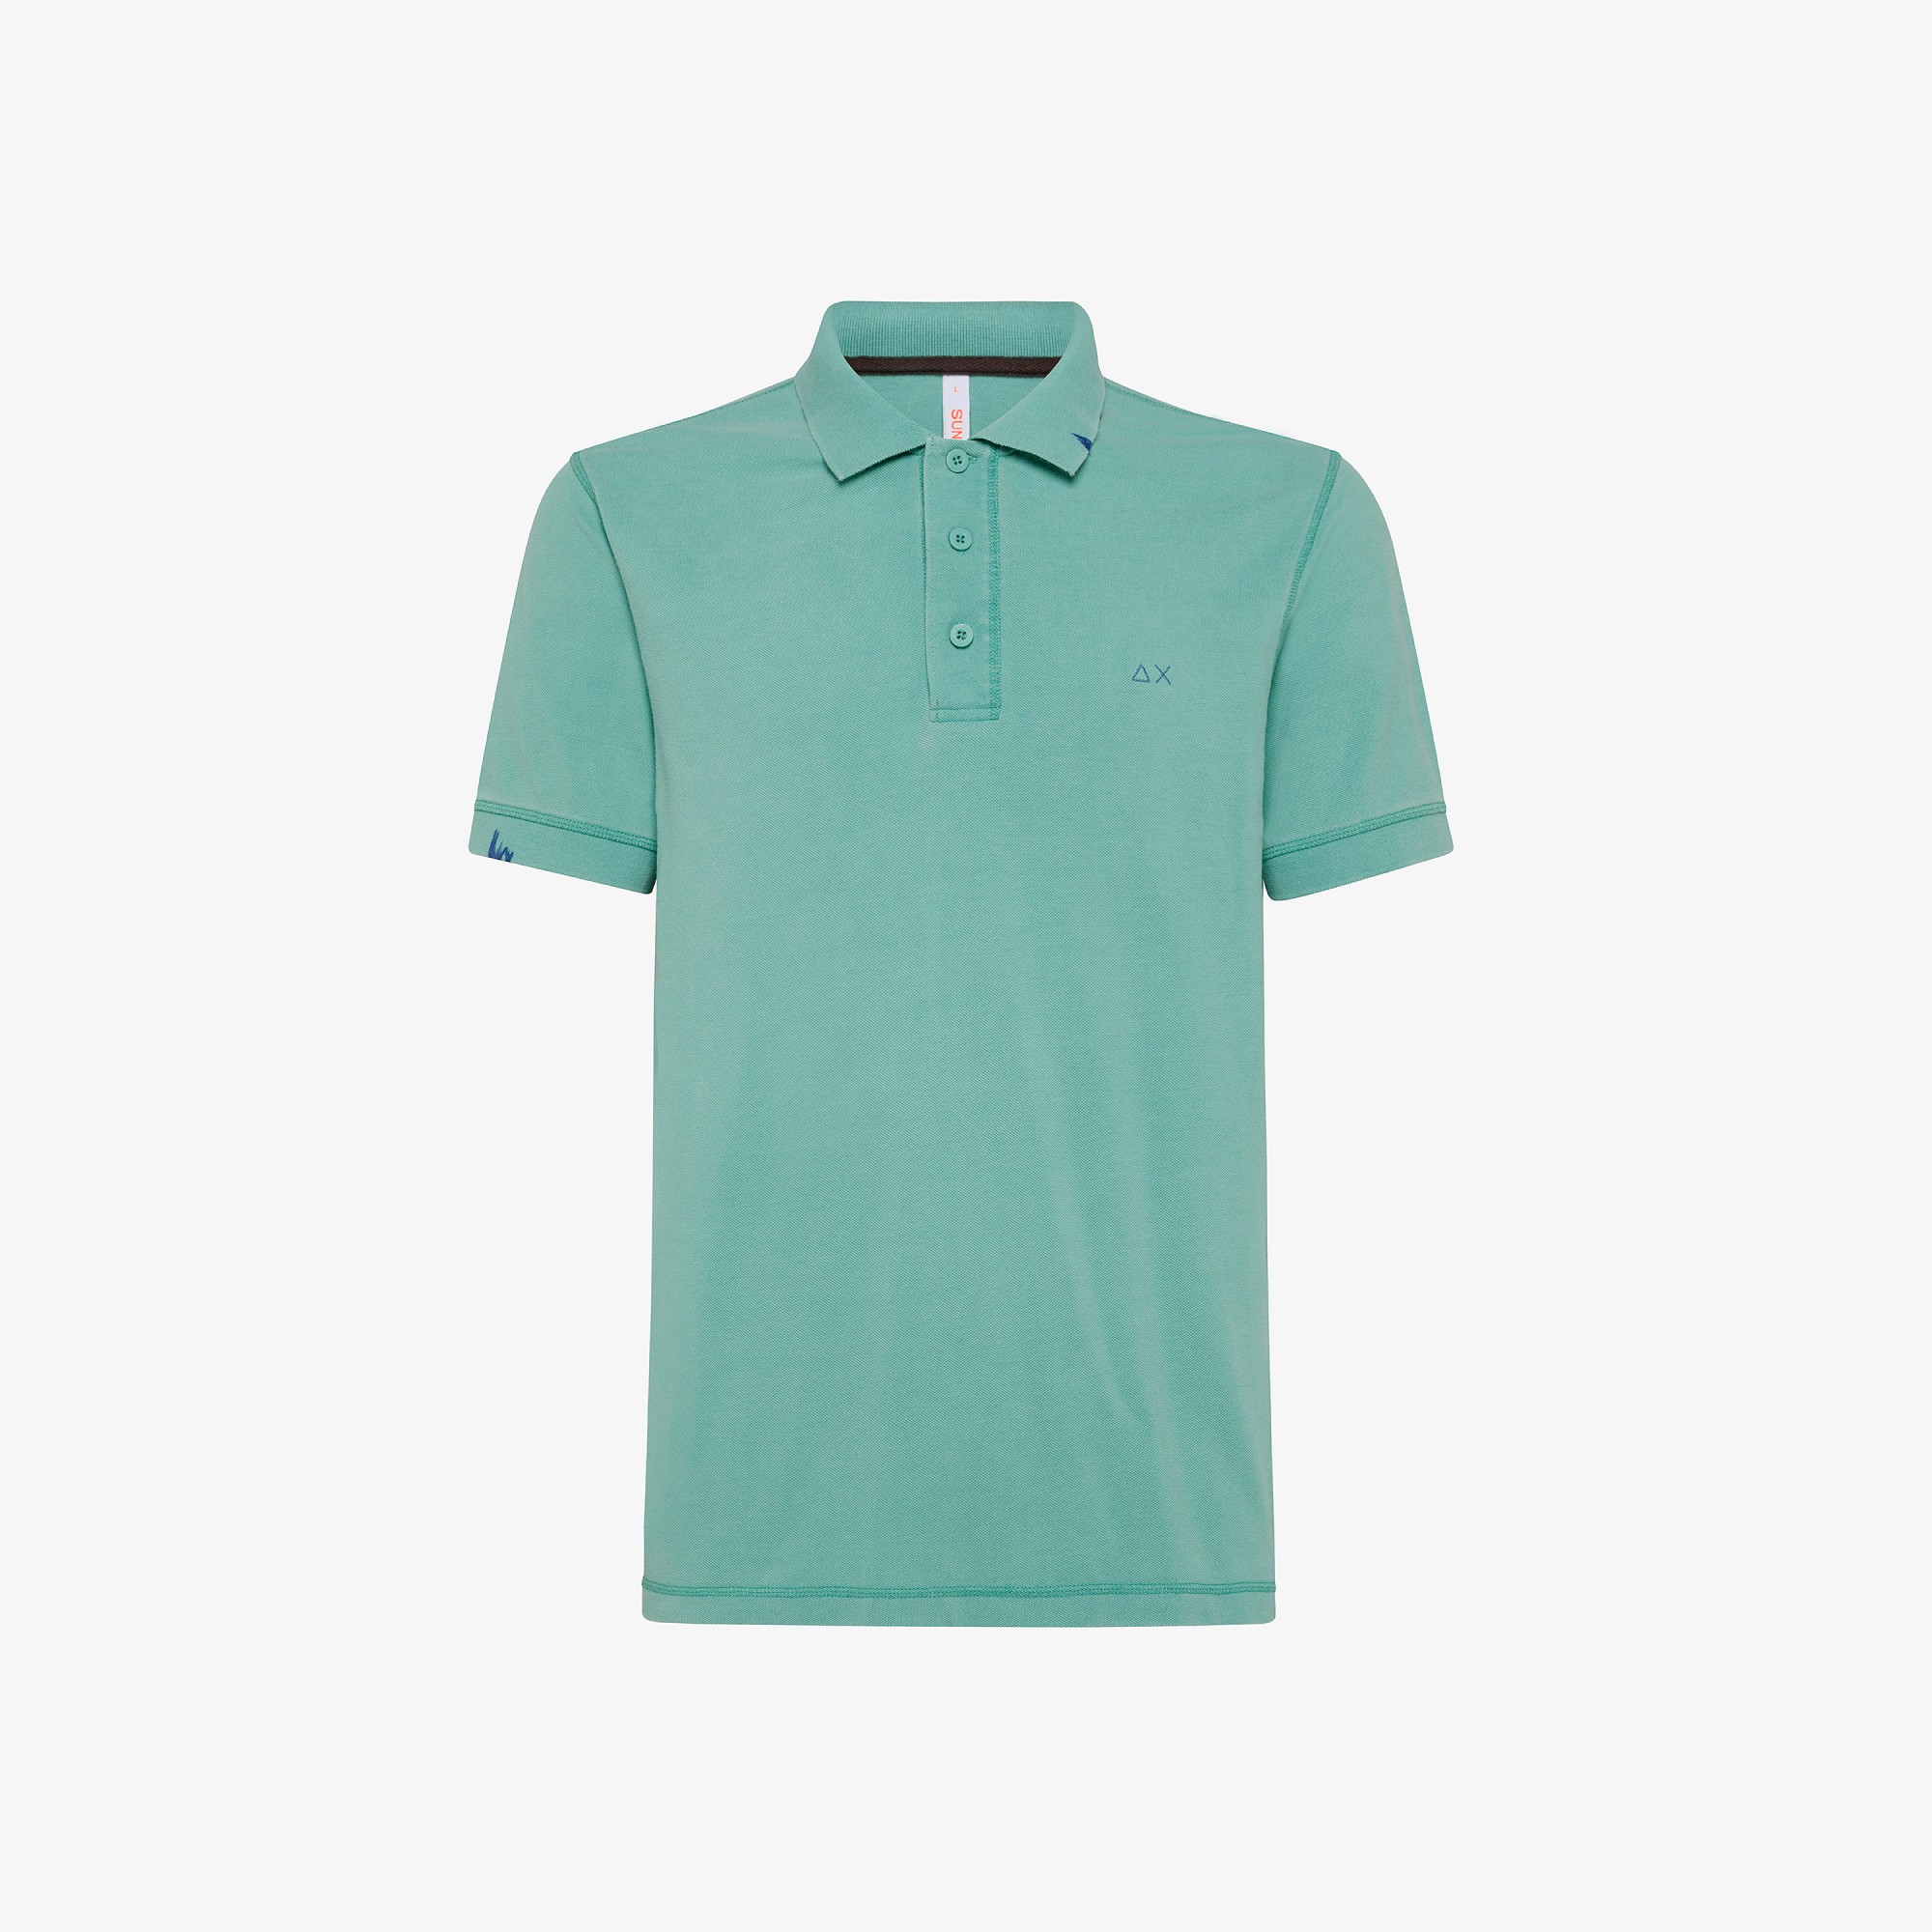 POLO VINTAGE CONTRAST STICHING S/S MINT